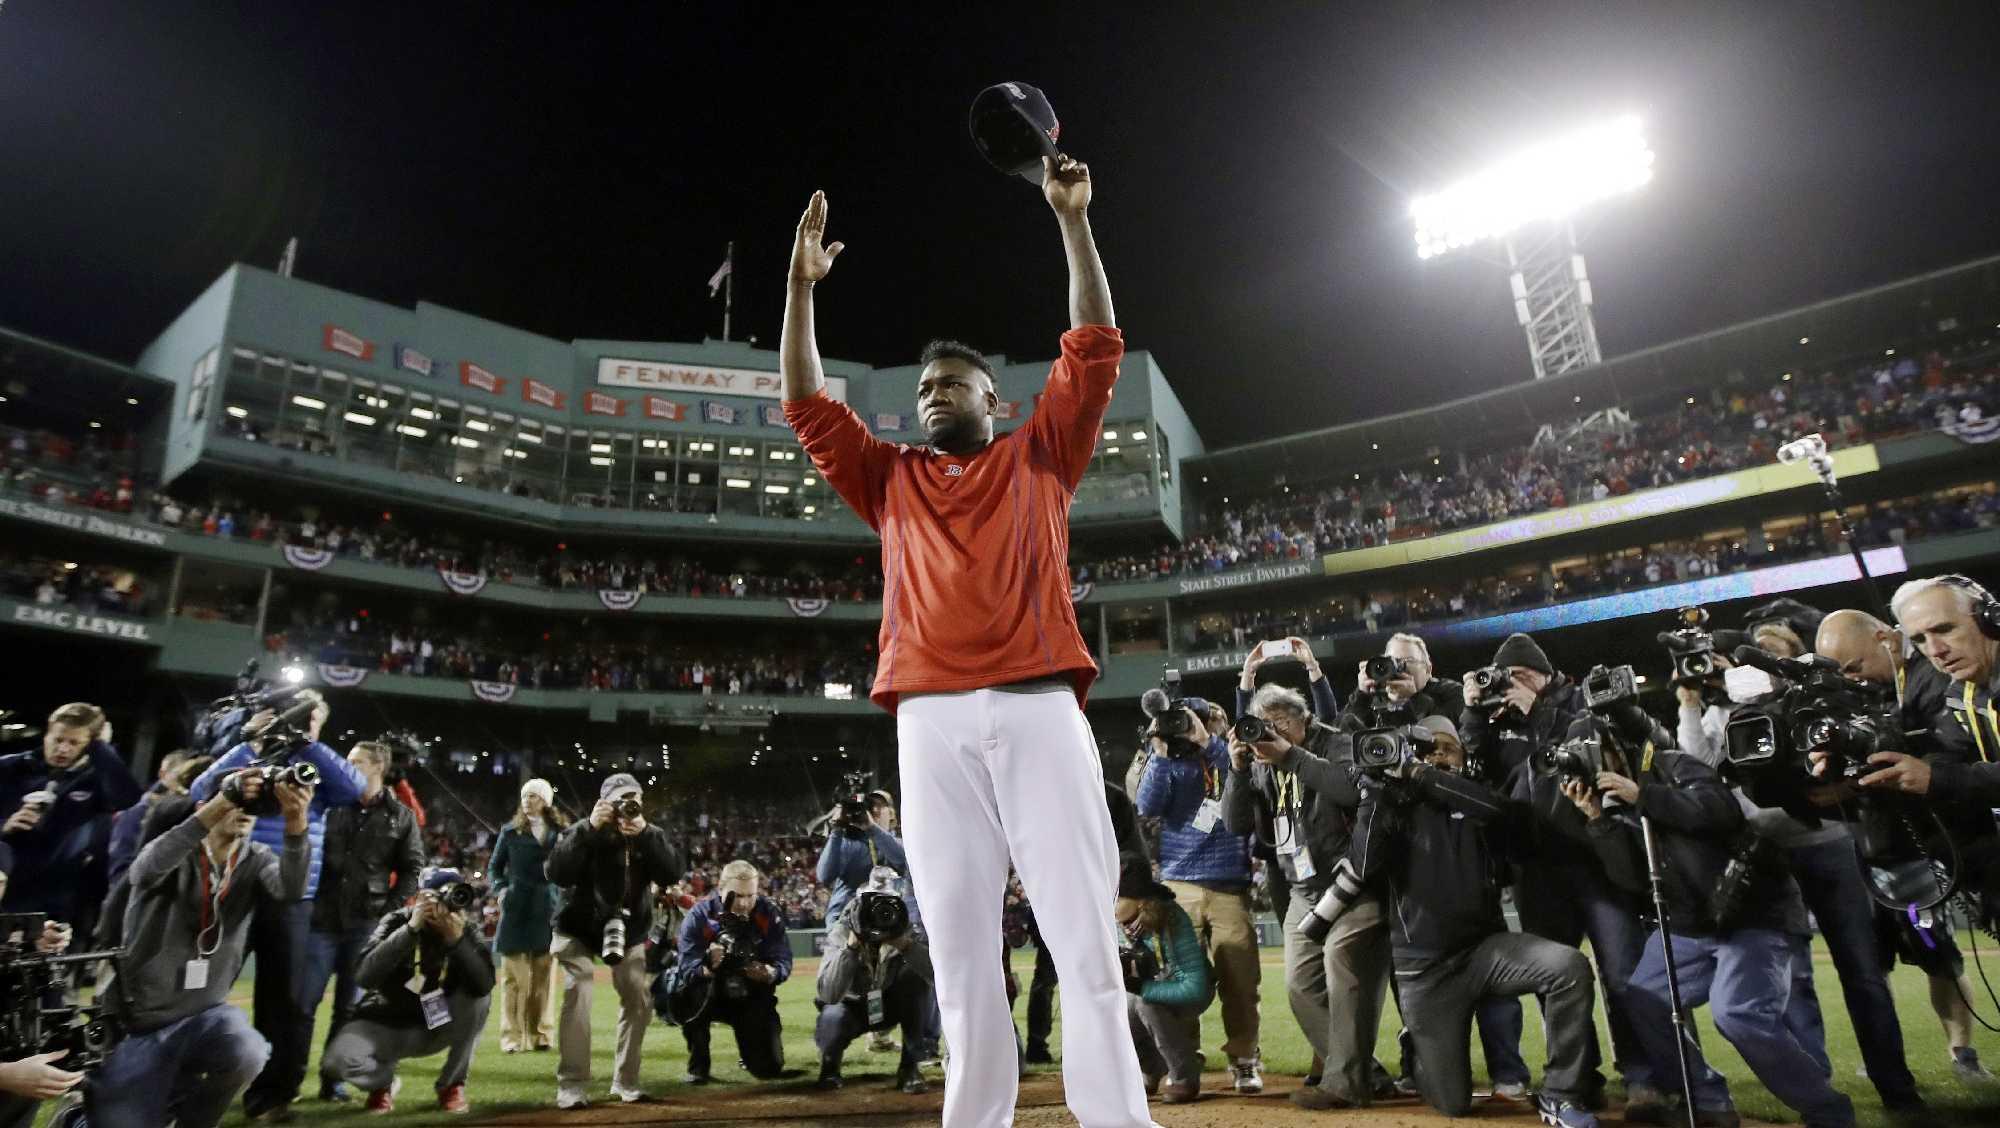 Boston Red Sox's David Ortiz stands on the mound at Fenway Park after Game 3 of baseball's American League Division Series against the Cleveland Indians, Monday, Oct. 10, 2016, in Boston. The Indians won 4-3 to sweep the Red Sox in the series. Ortiz said he will retire at the end of the season.